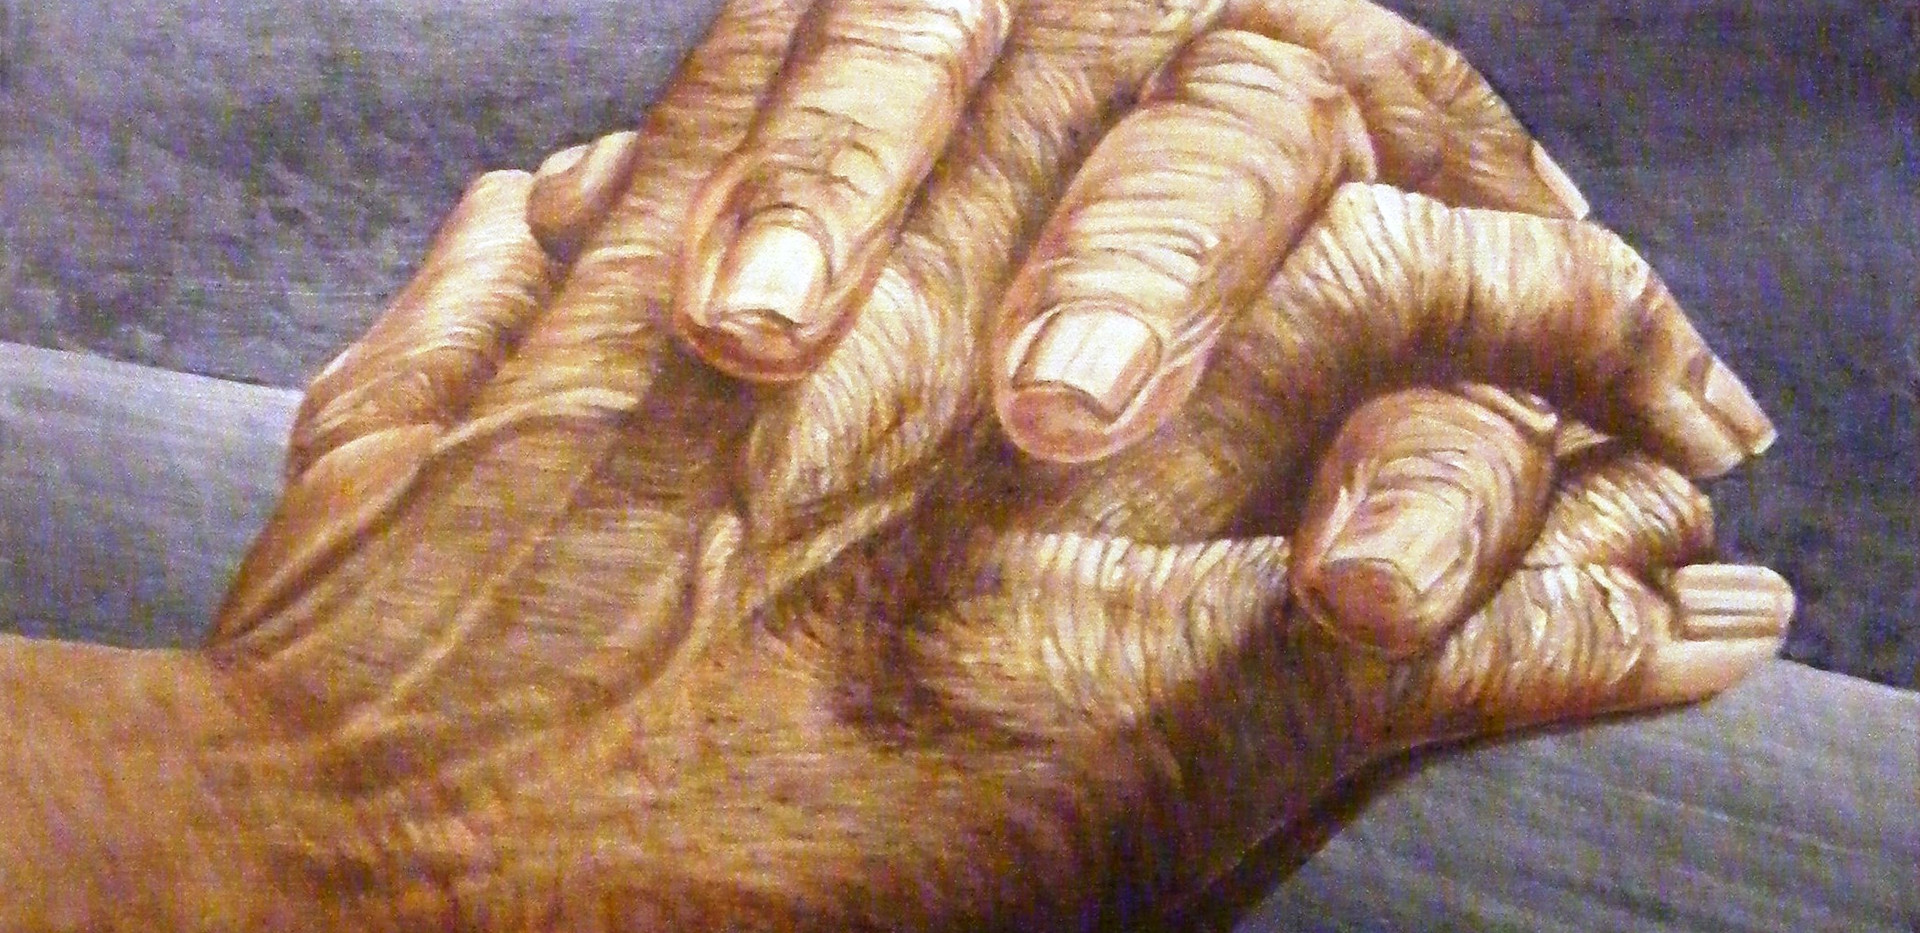 'Artist's hands' in oils